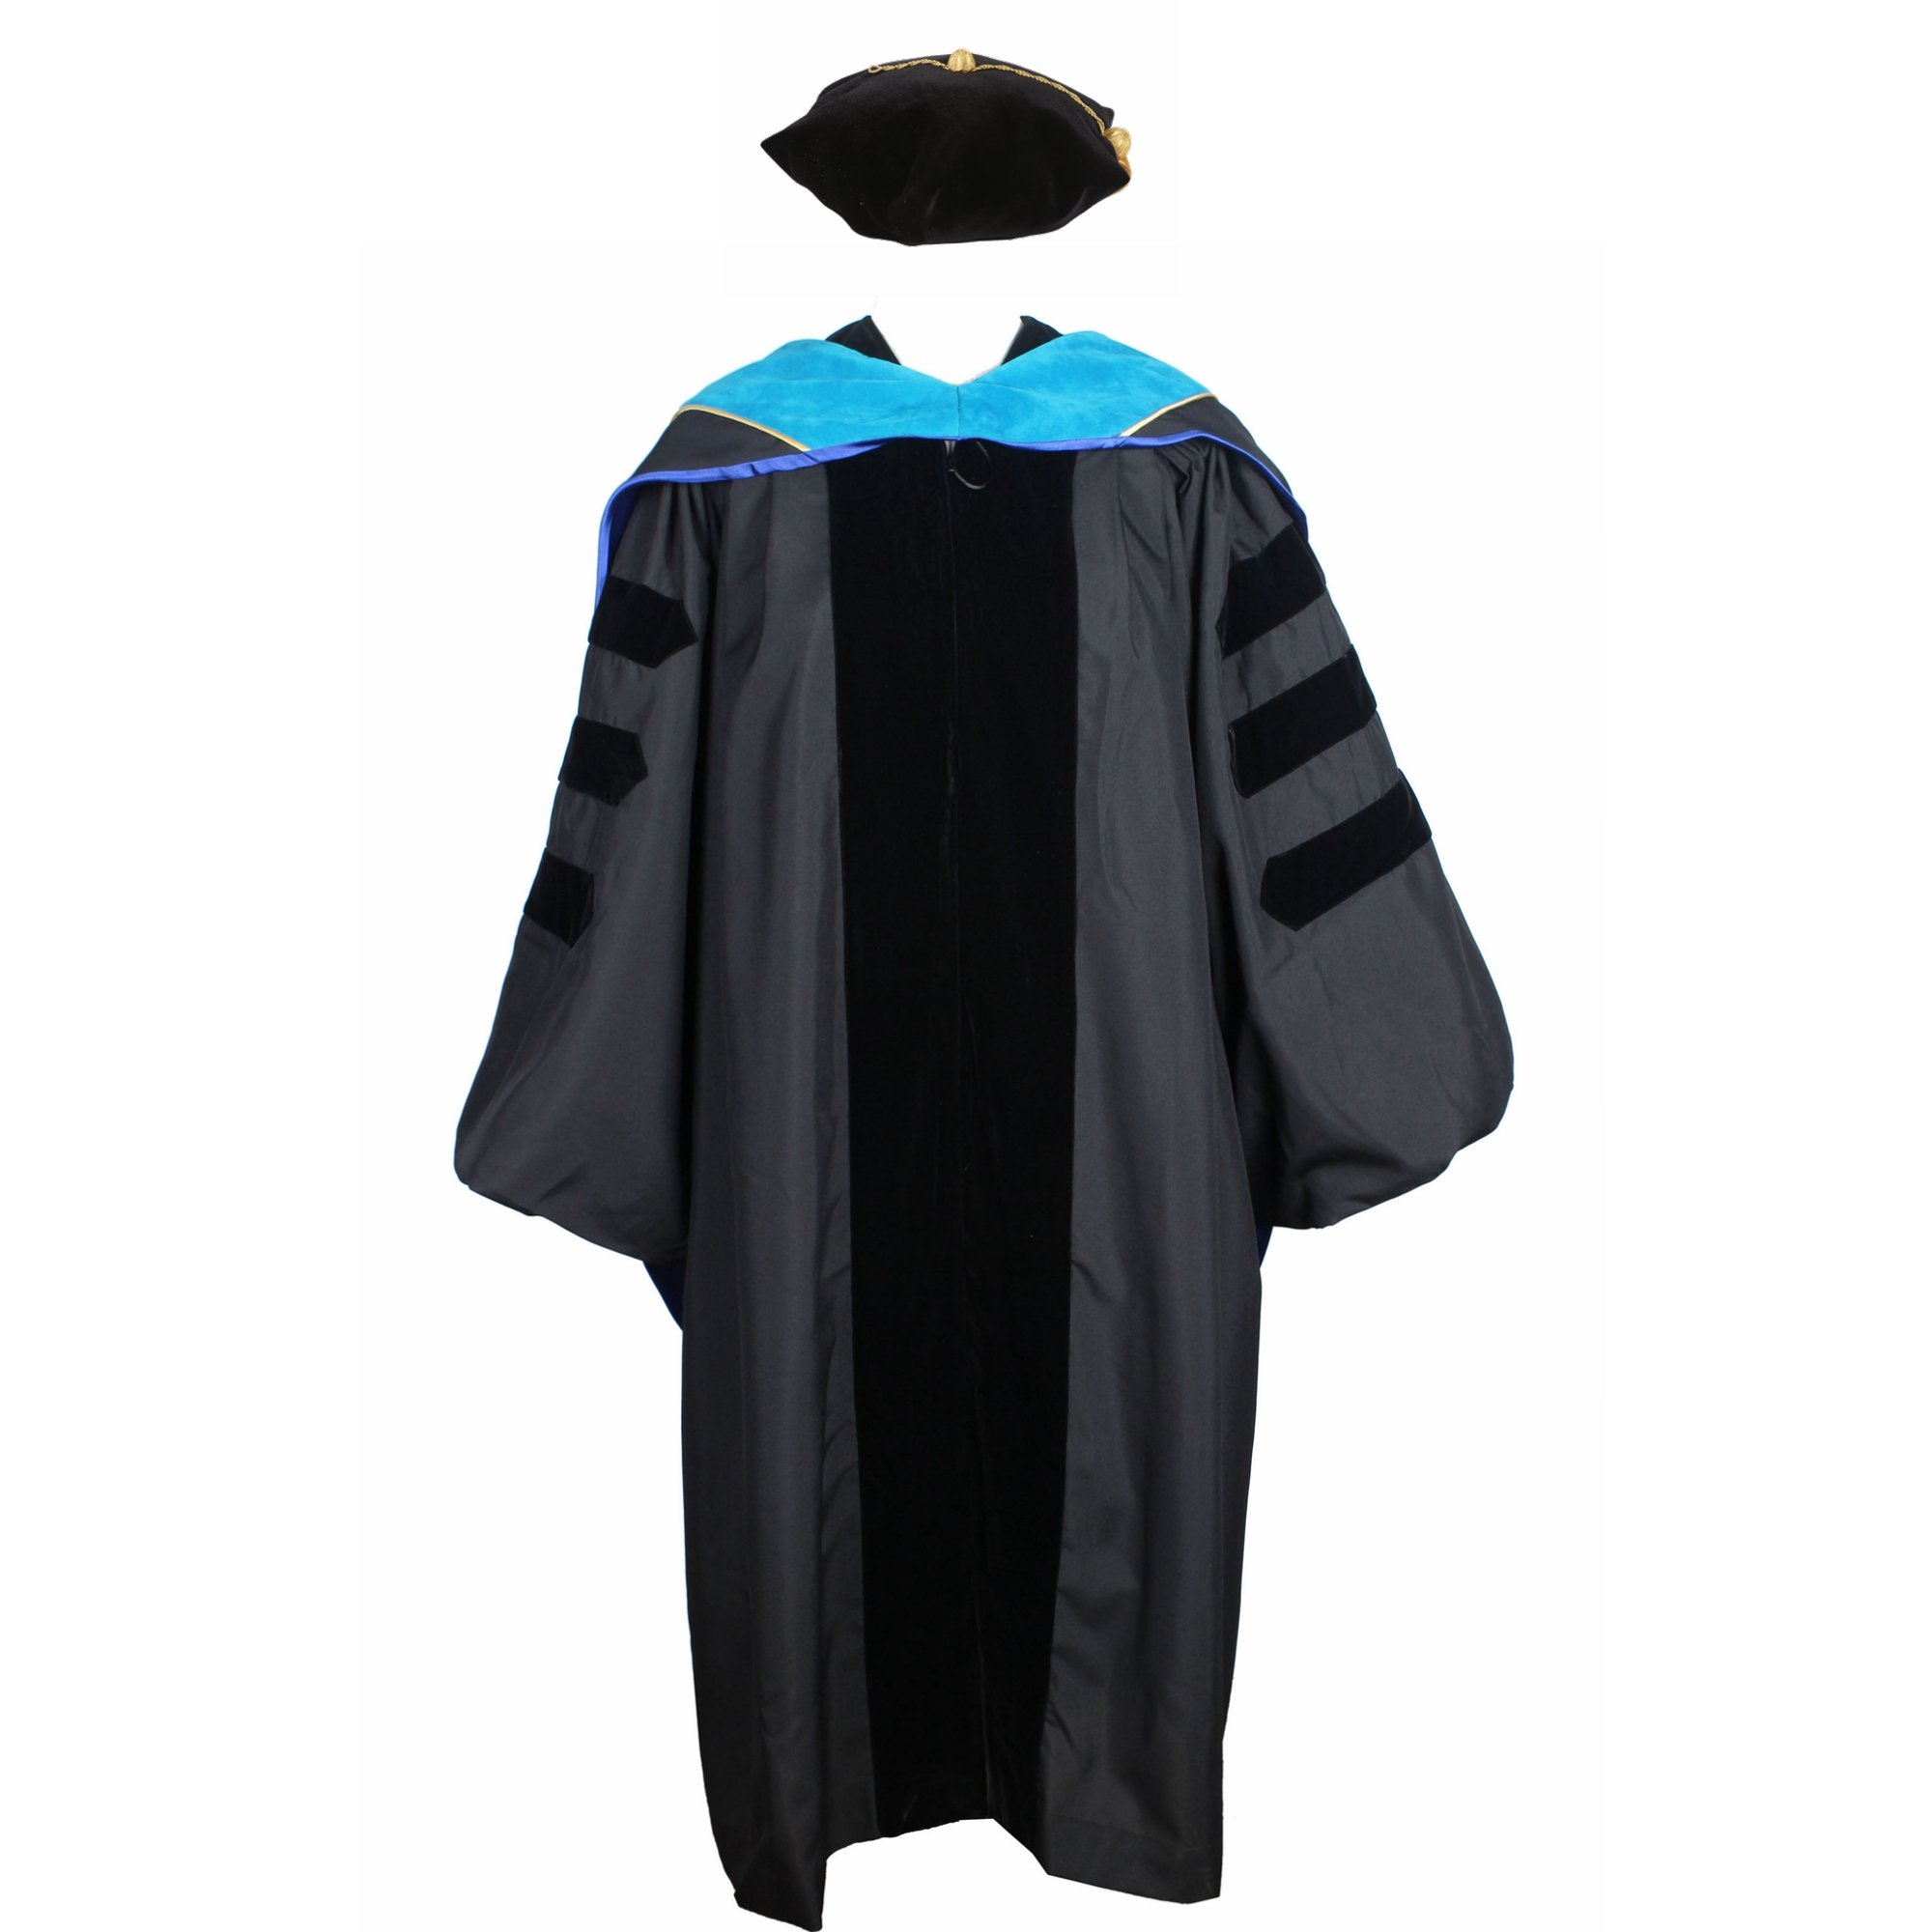 GraduationService Deluxe Classic Doctoral Graduation Gown,Hood and Tam Package Unisex Phd Gown by GraduationService